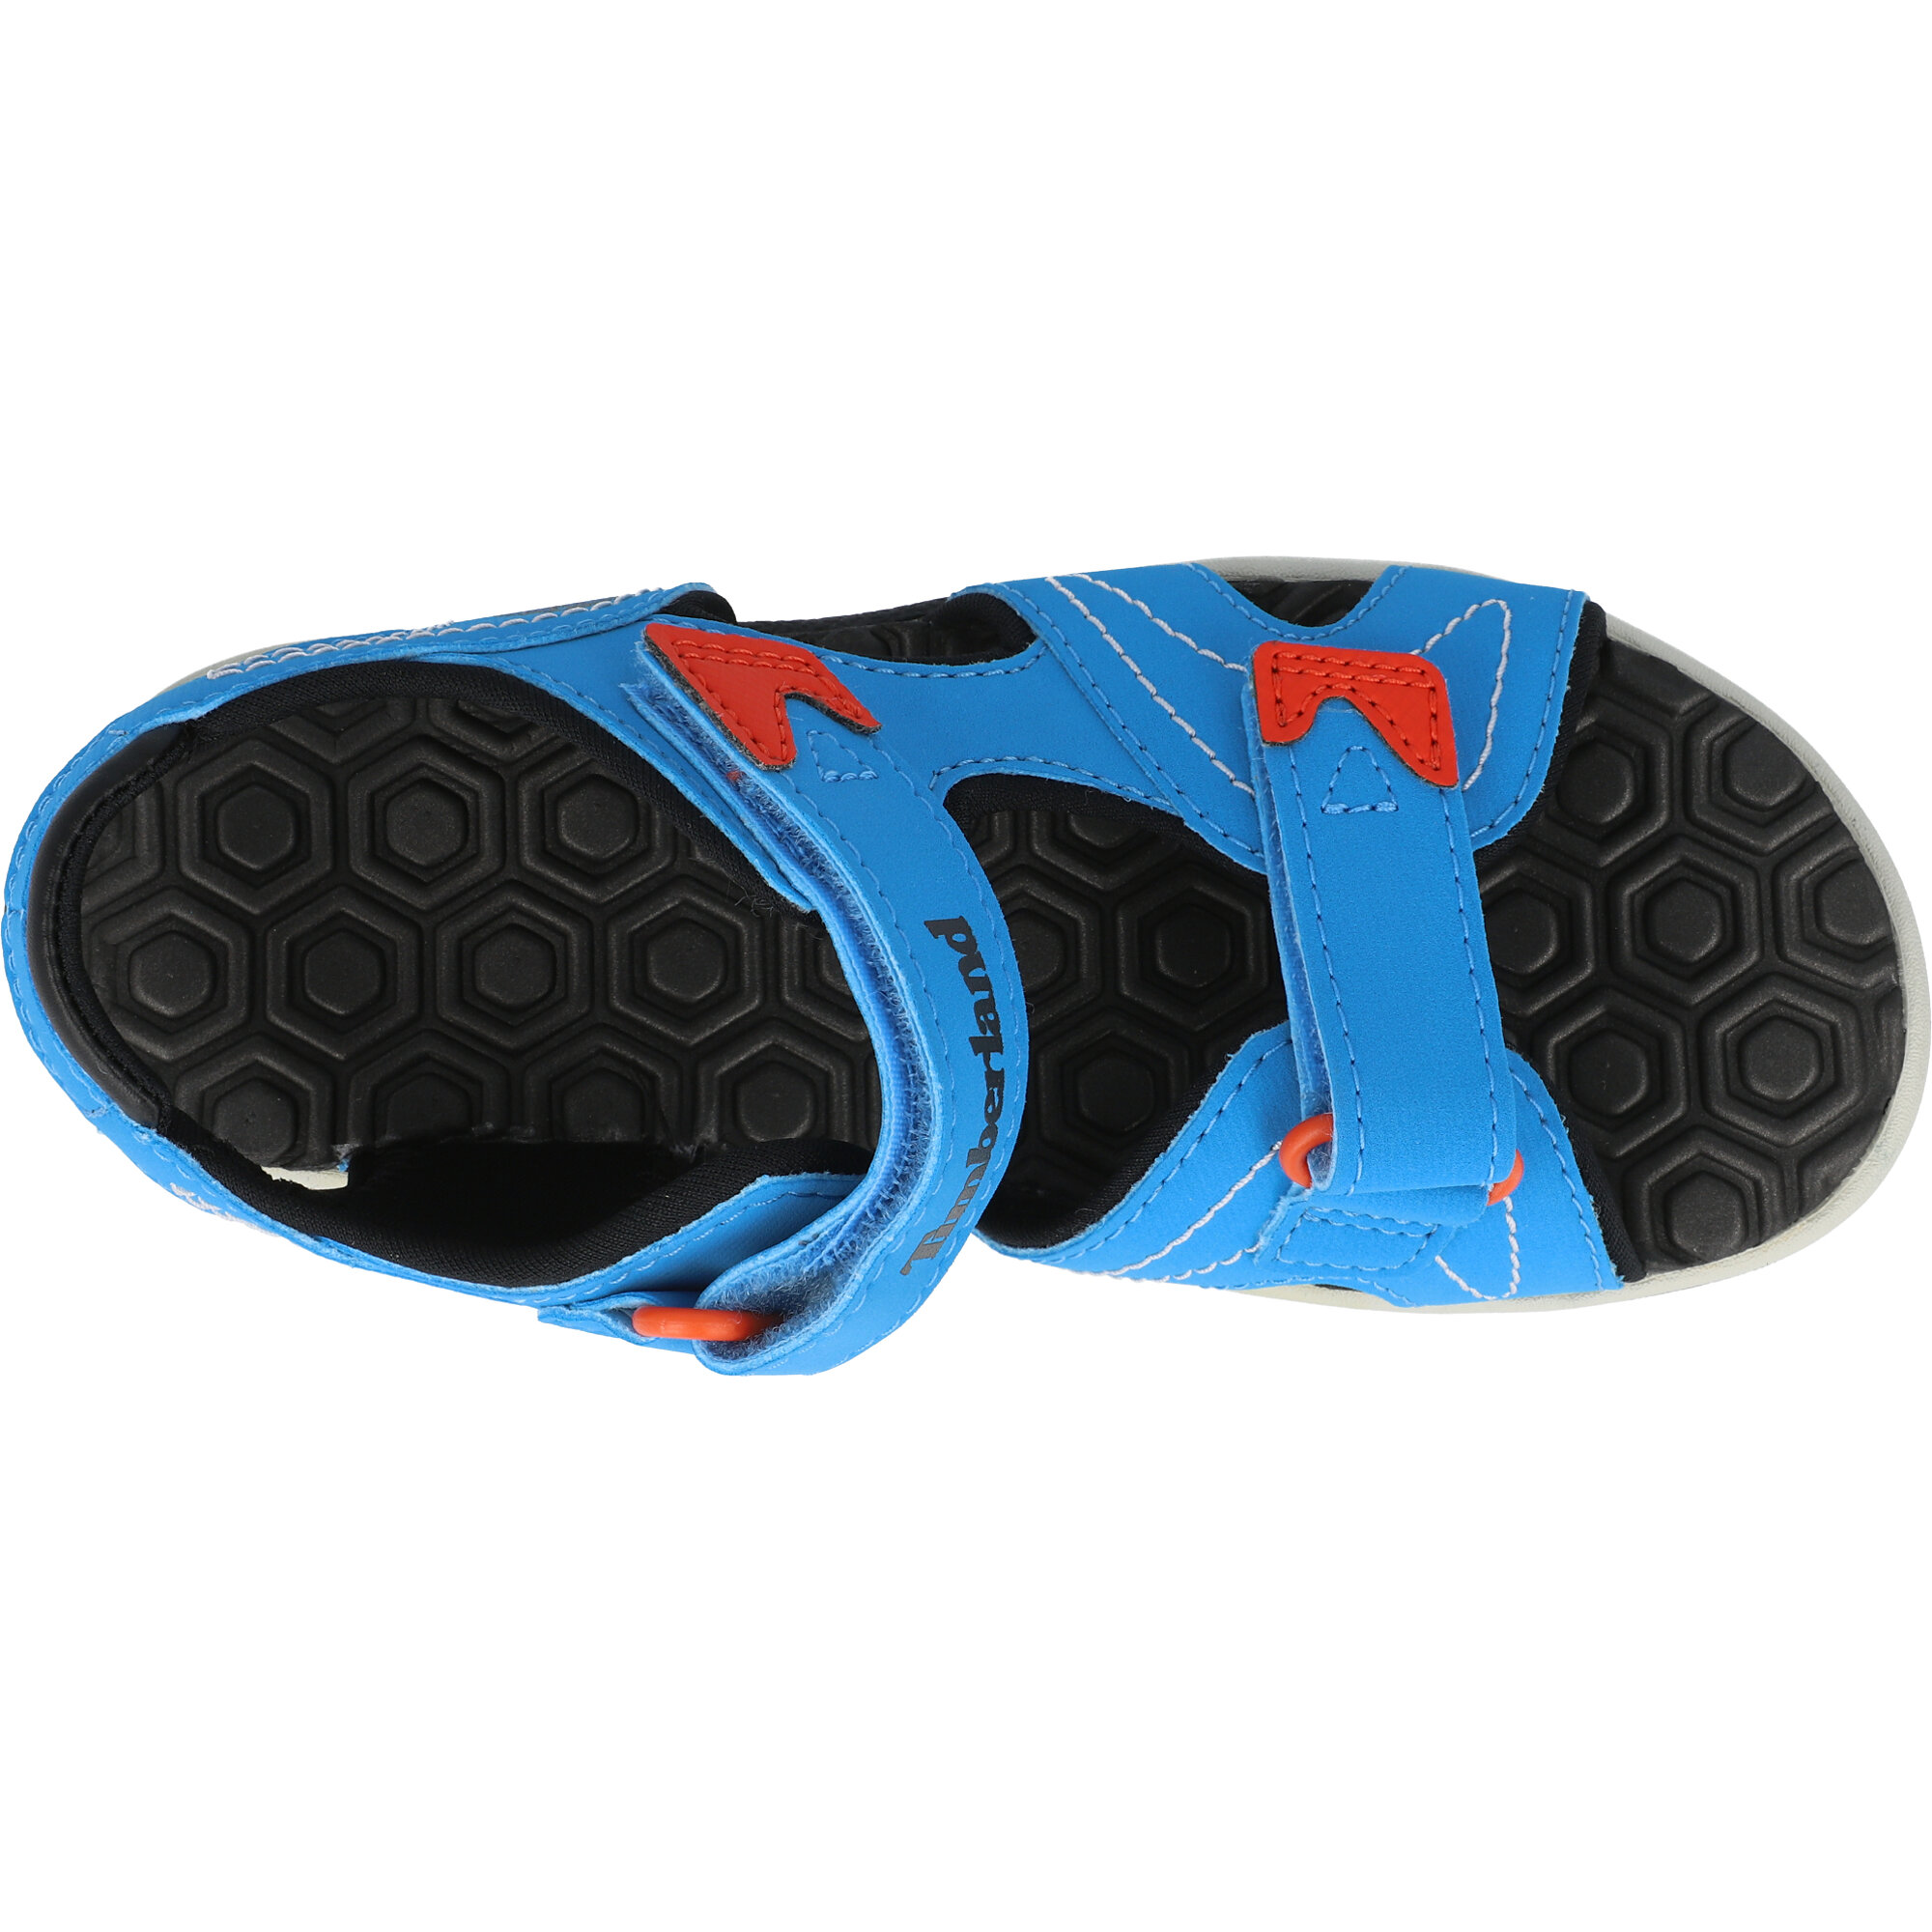 Timberland Adventure Seeker 2-Strap Y Bright Blue Synthetic Leather